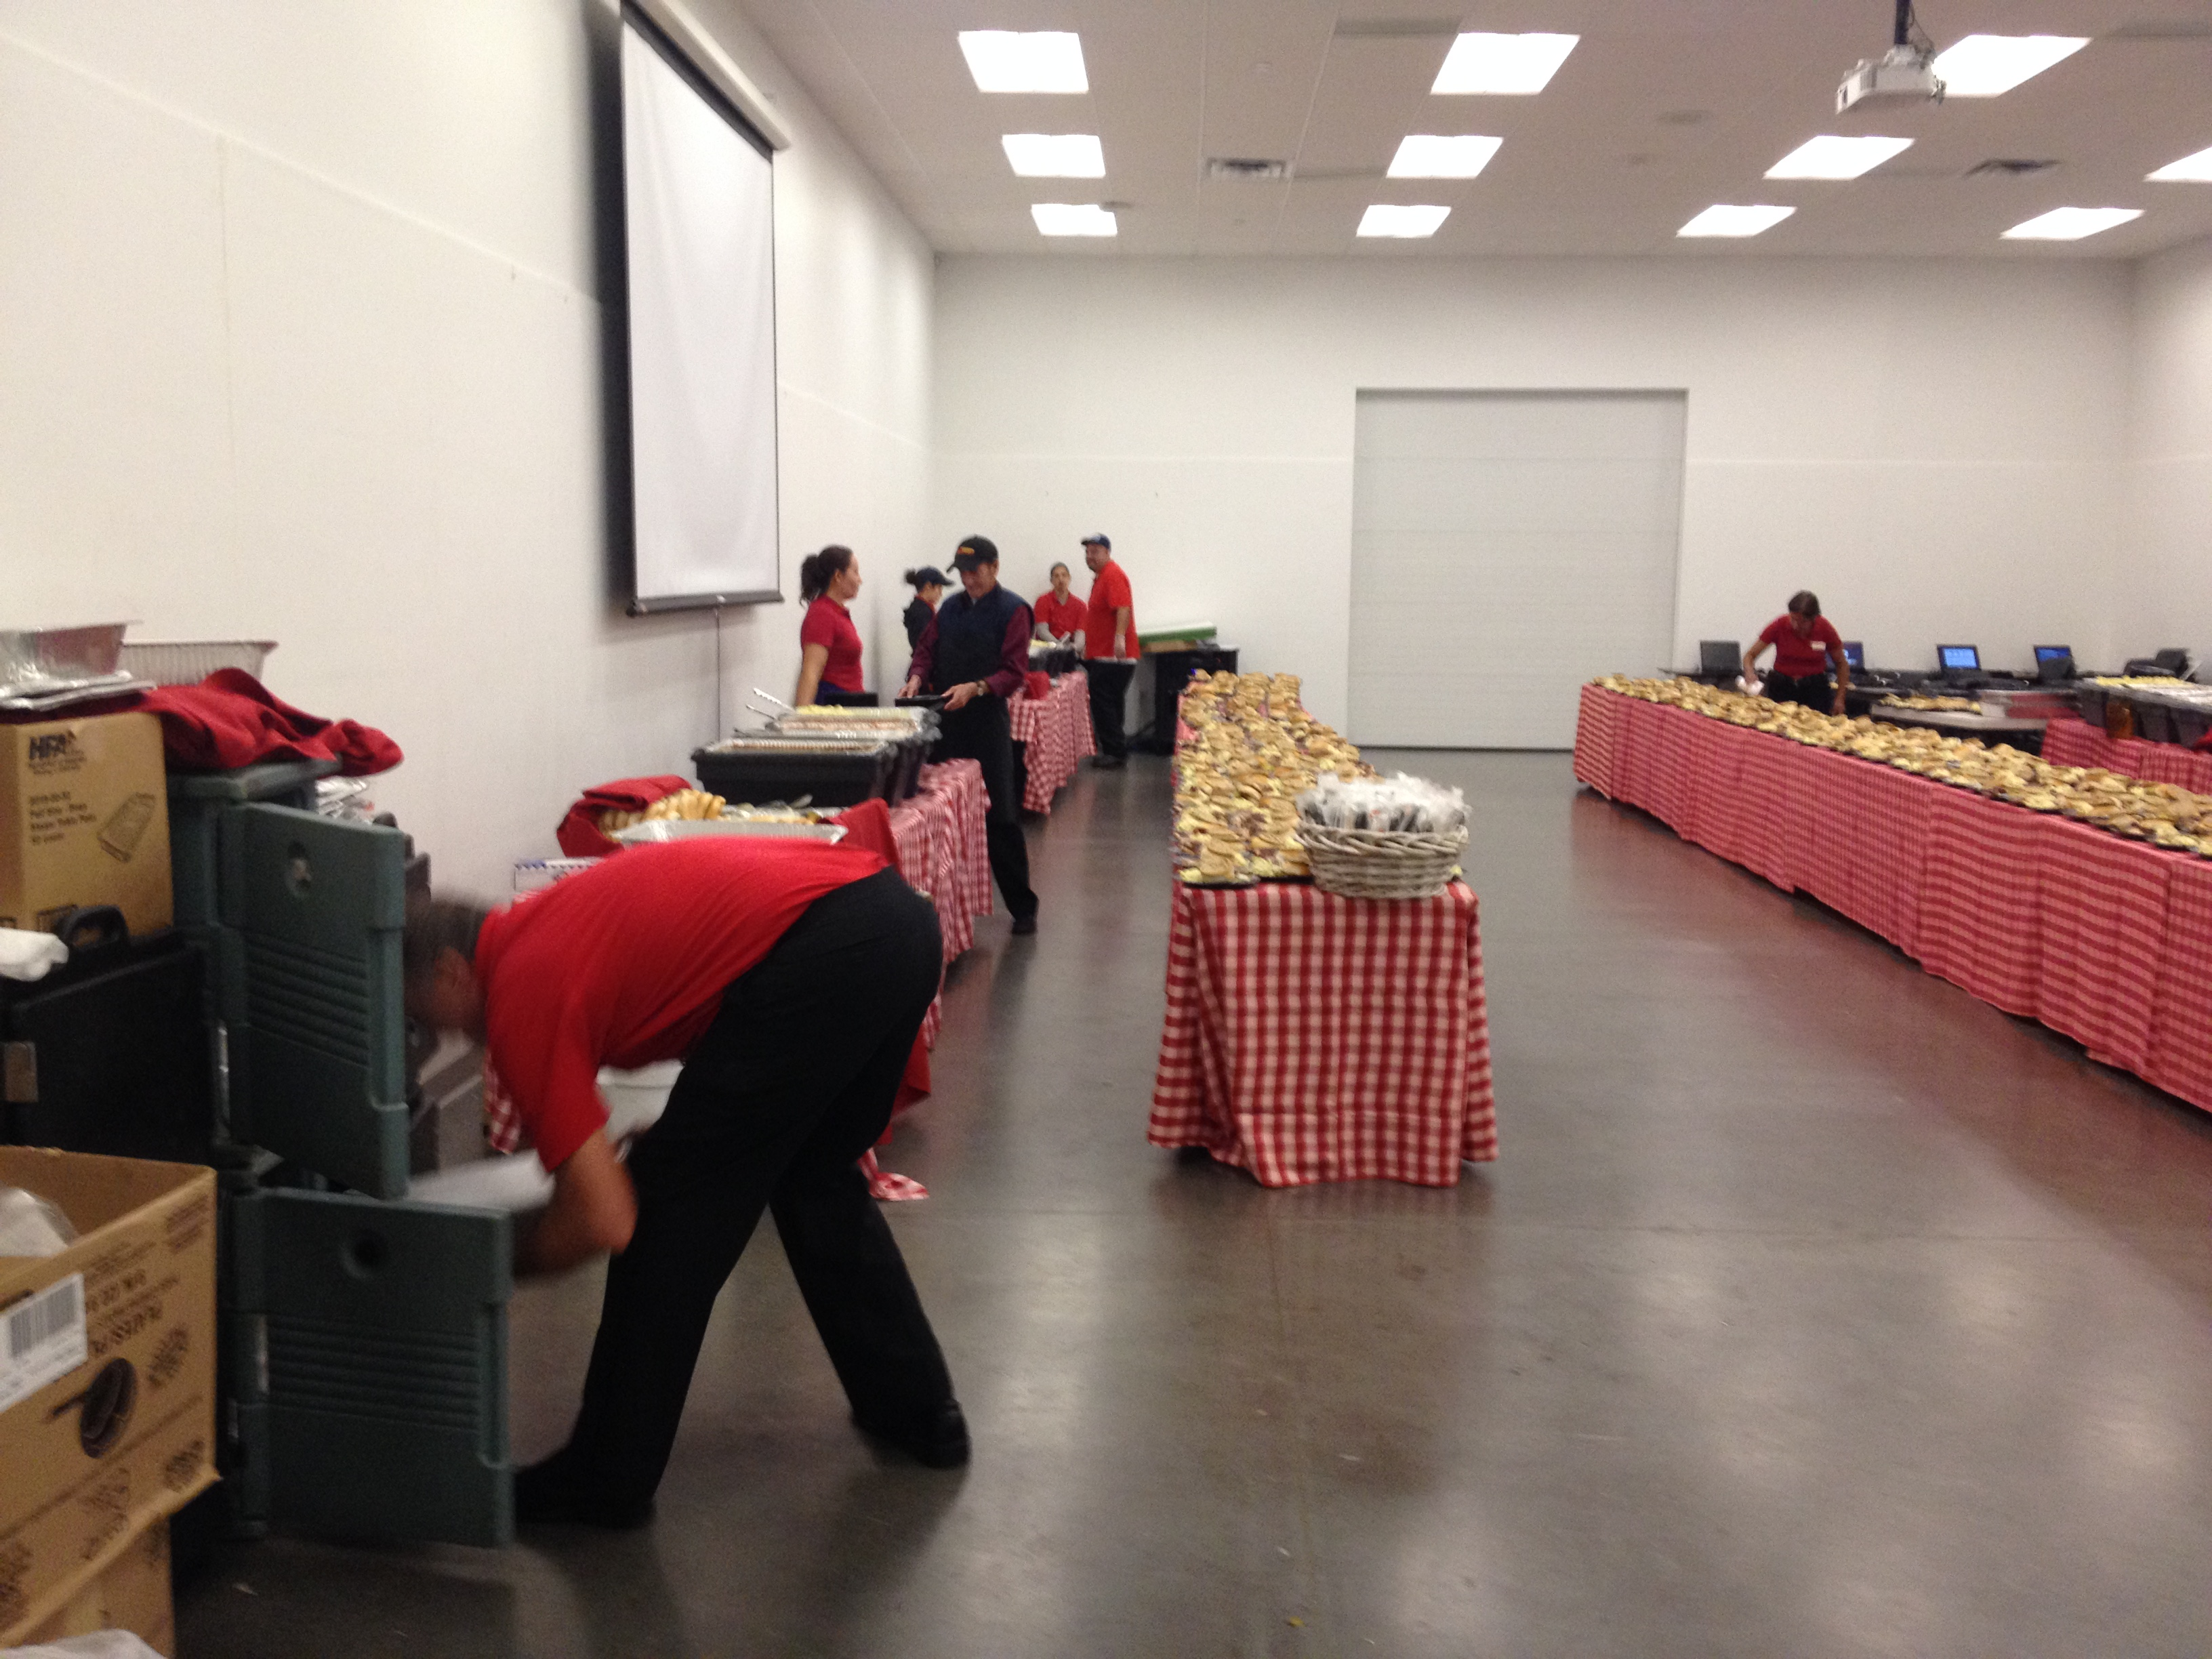 Crusaders Helping Setup Banquet